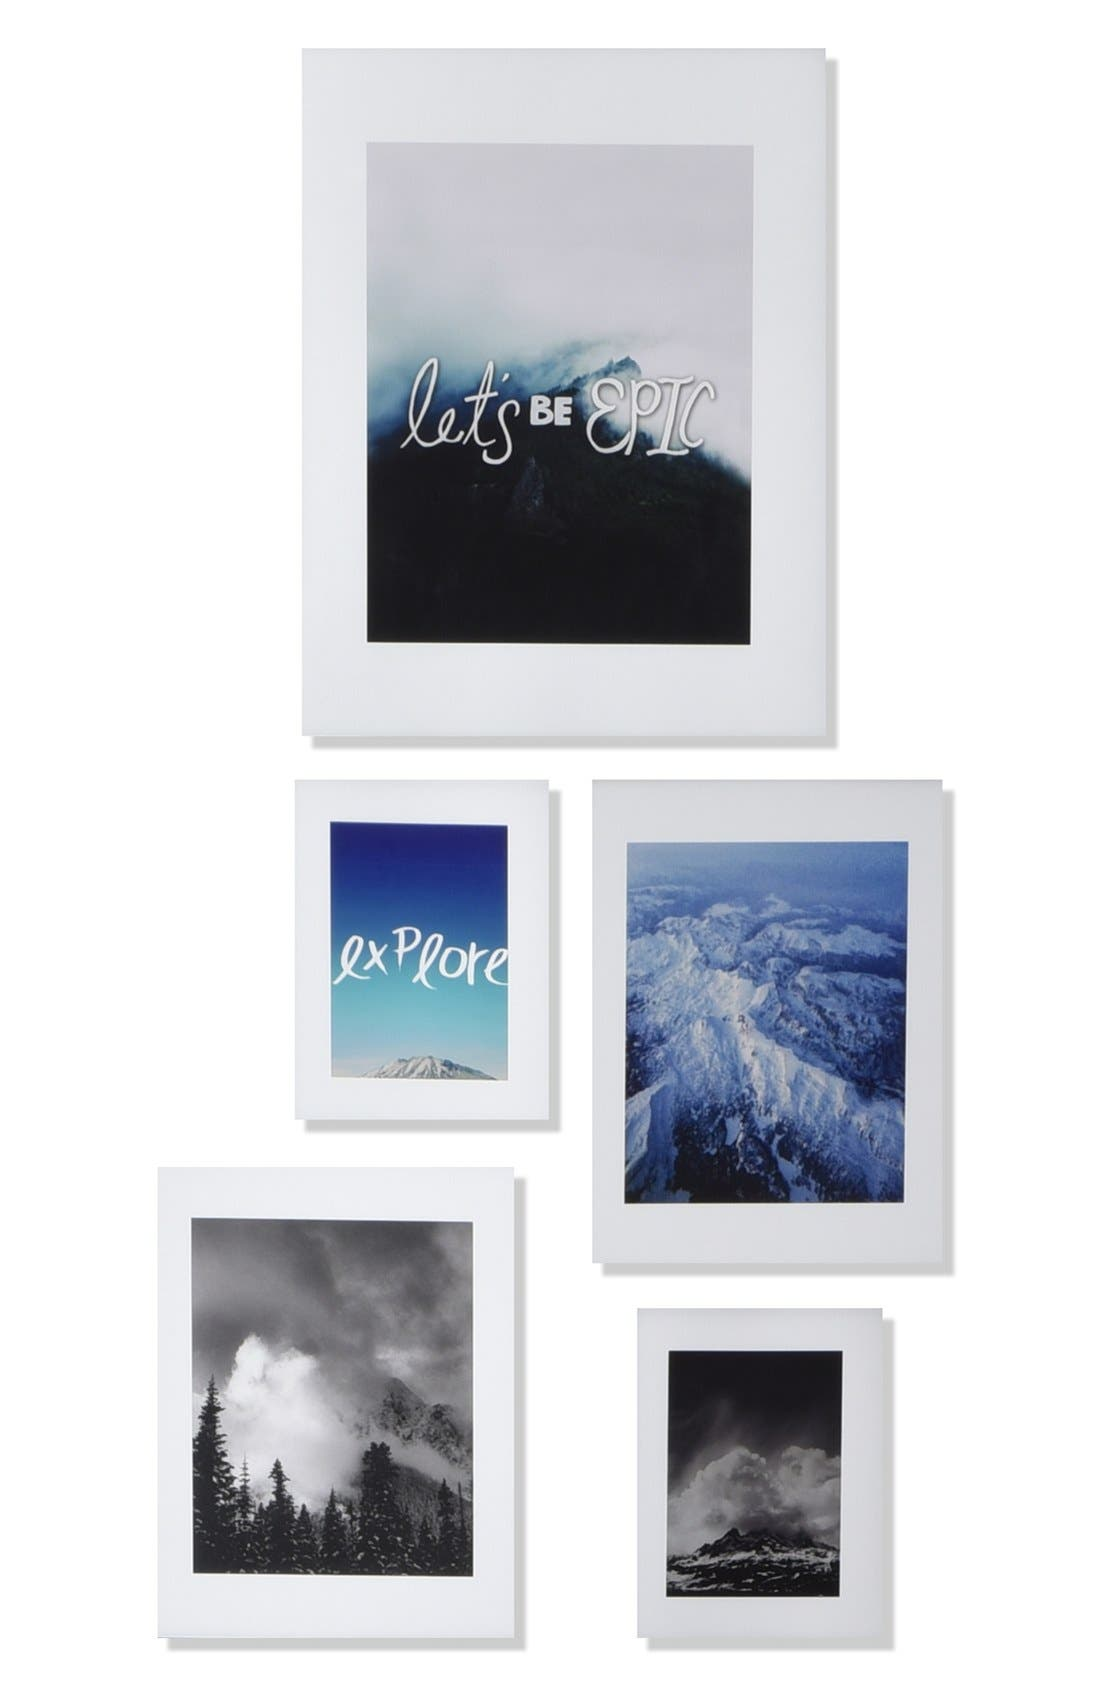 DENY DESIGNS 'Let's Be Epic' Wall Art Gallery